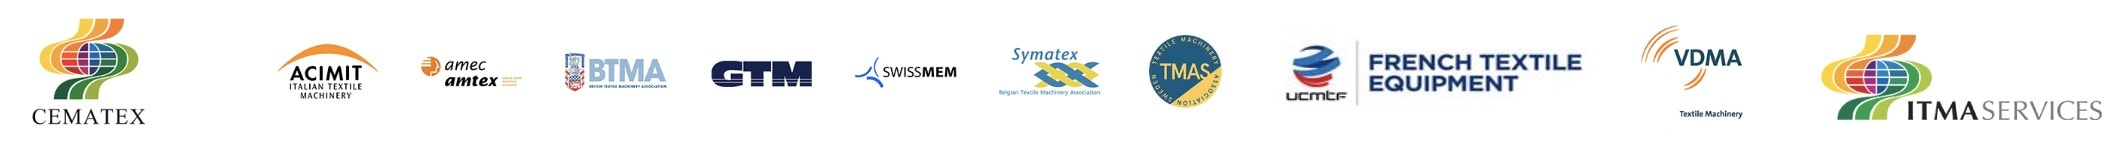 European Committee of Textile Machinery Manufacturers